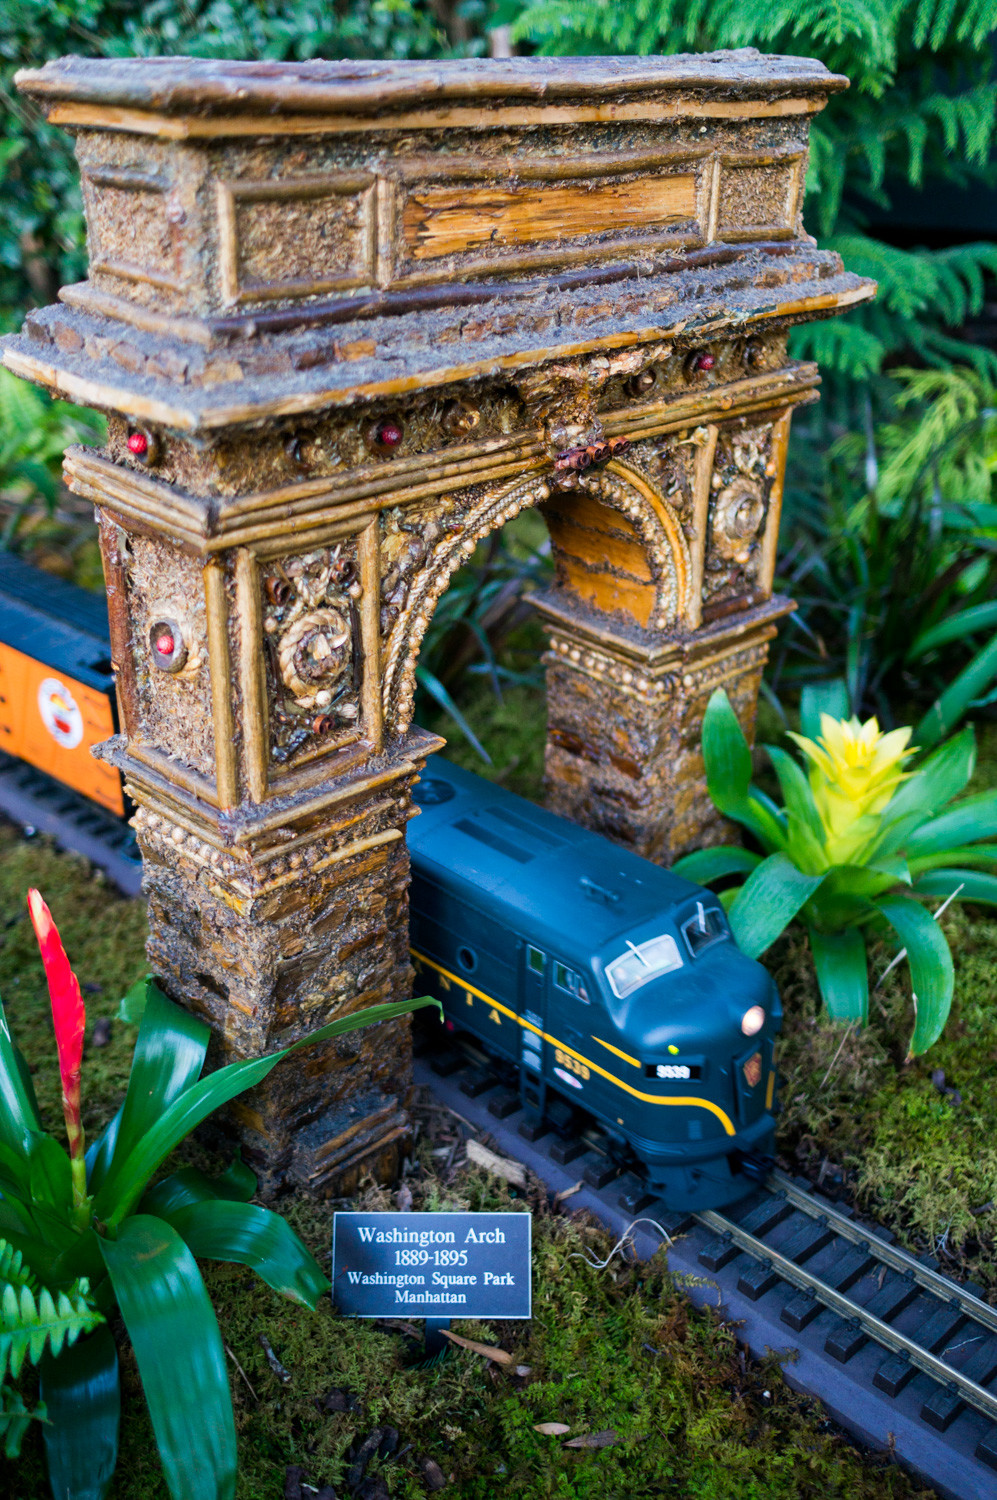 A model train passes under a replica of the Washington Arch in the Holiday Train Show at the New York Botanical Garden. The team of artists and technicians at Applied Imagination laid over a half-mile of train tracks in this year's show.